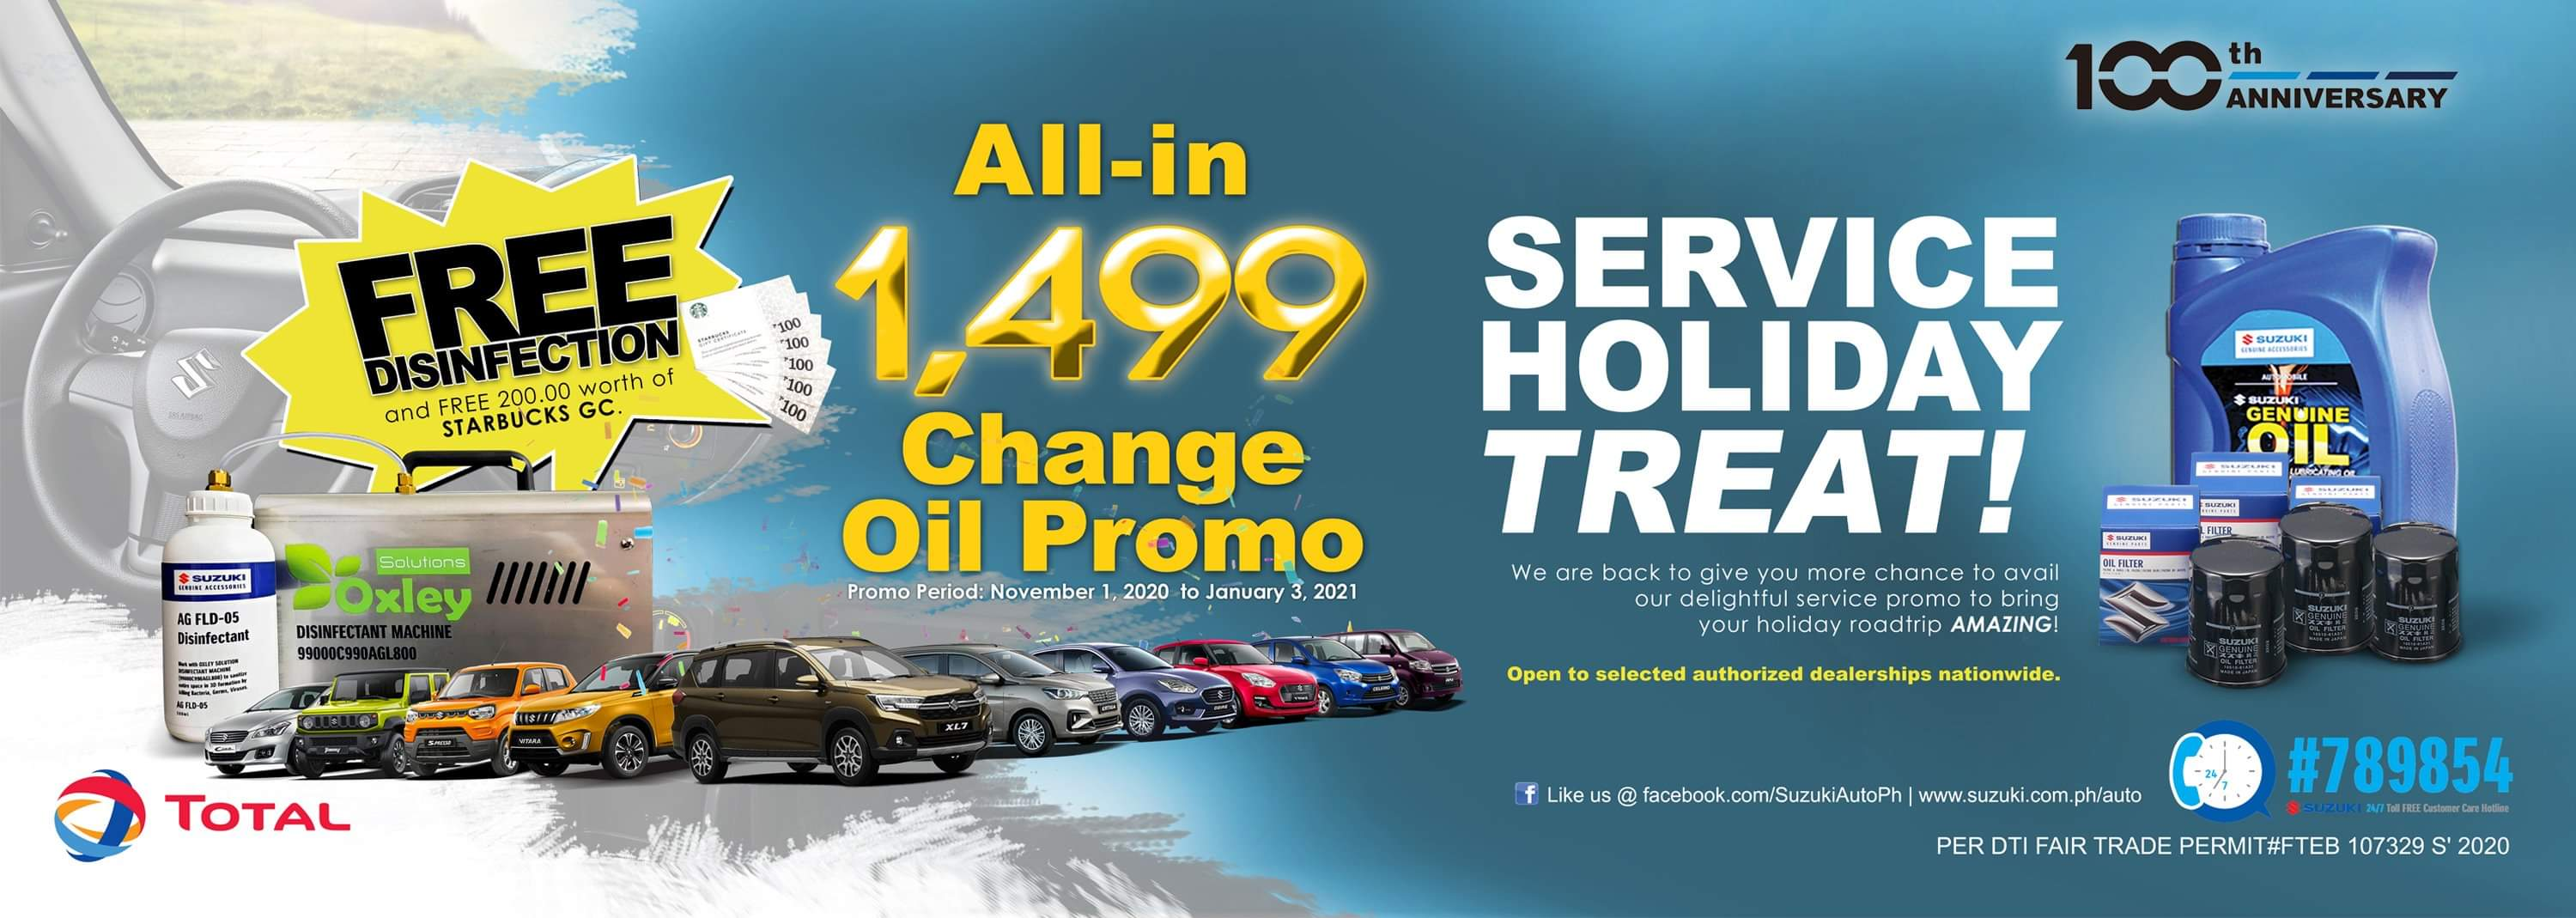 ALL-IN 1,499 Change Oil Promo